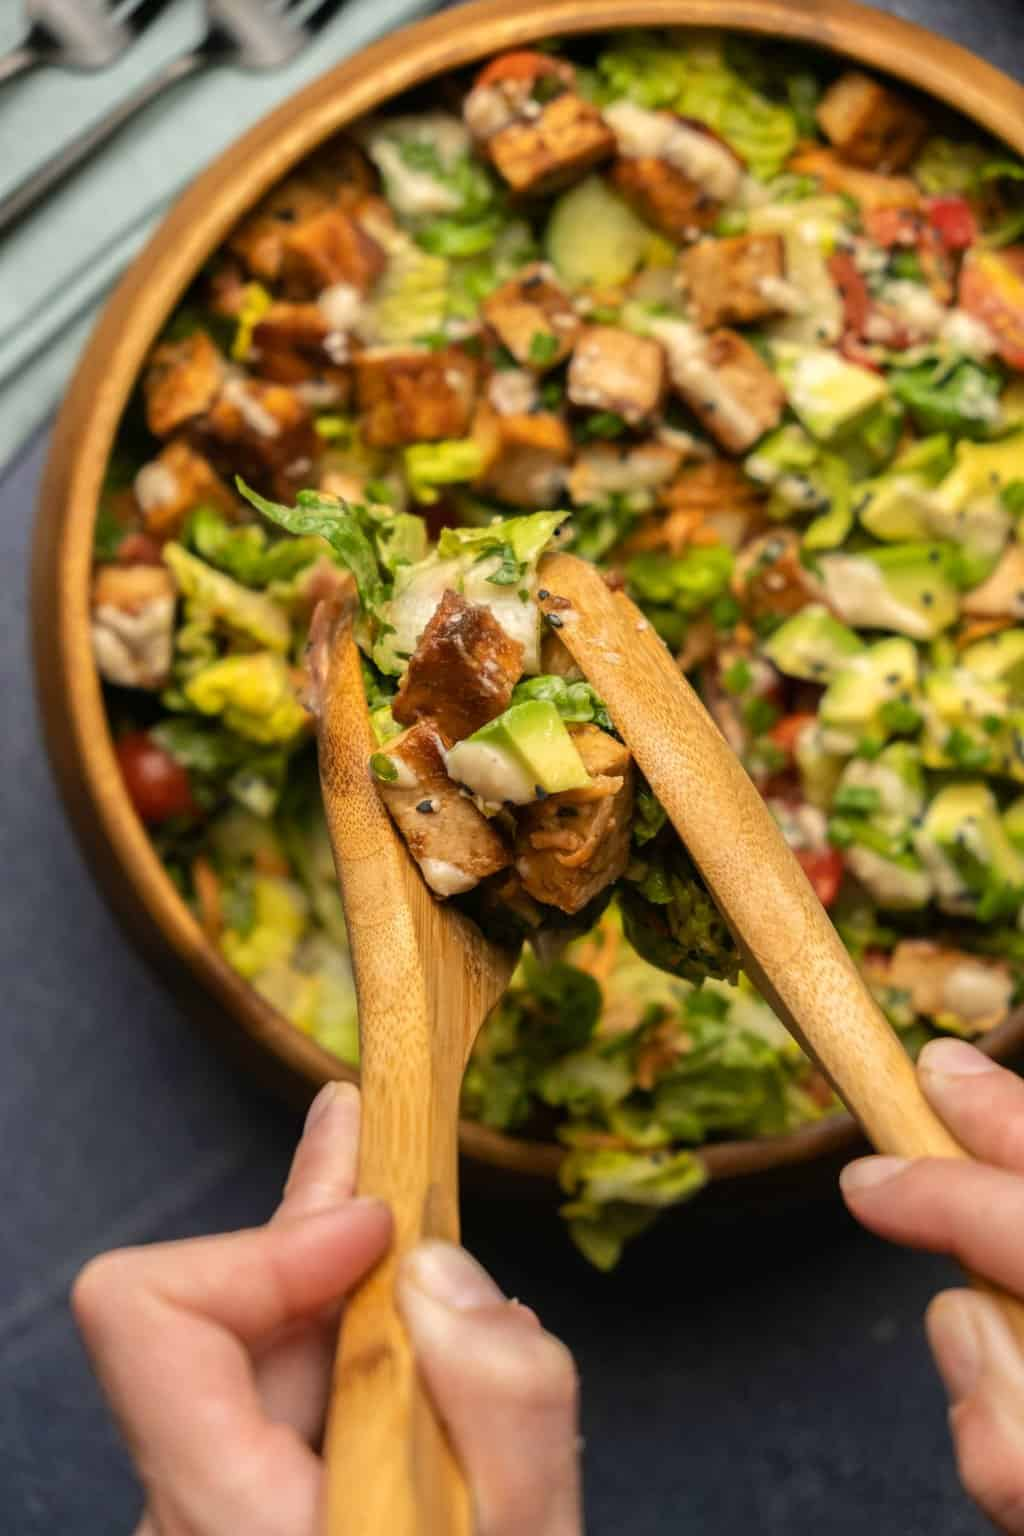 Dishing up tofu salad from a wooden bowl with wooden salad spoons.